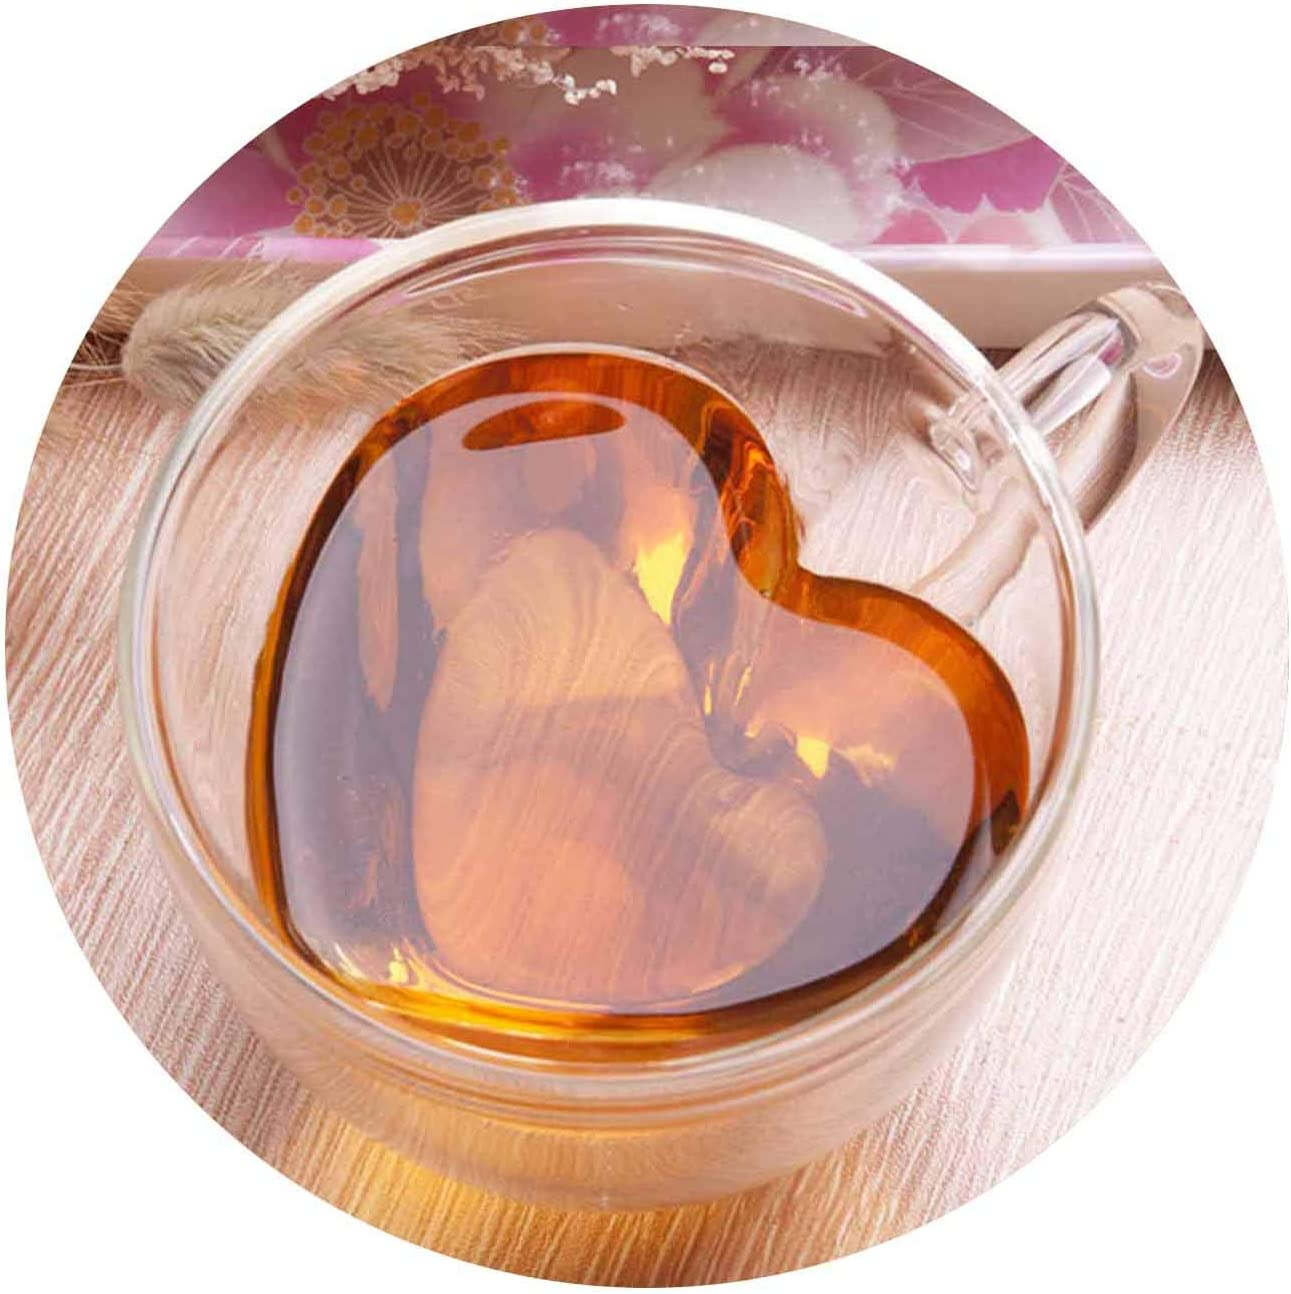 XHHOME Heart Shaped Double Walled Insulated Glass Coffee Mugs or Tea Cups Double Wall Glass Clear Unique & Insulated with Handle (Large)